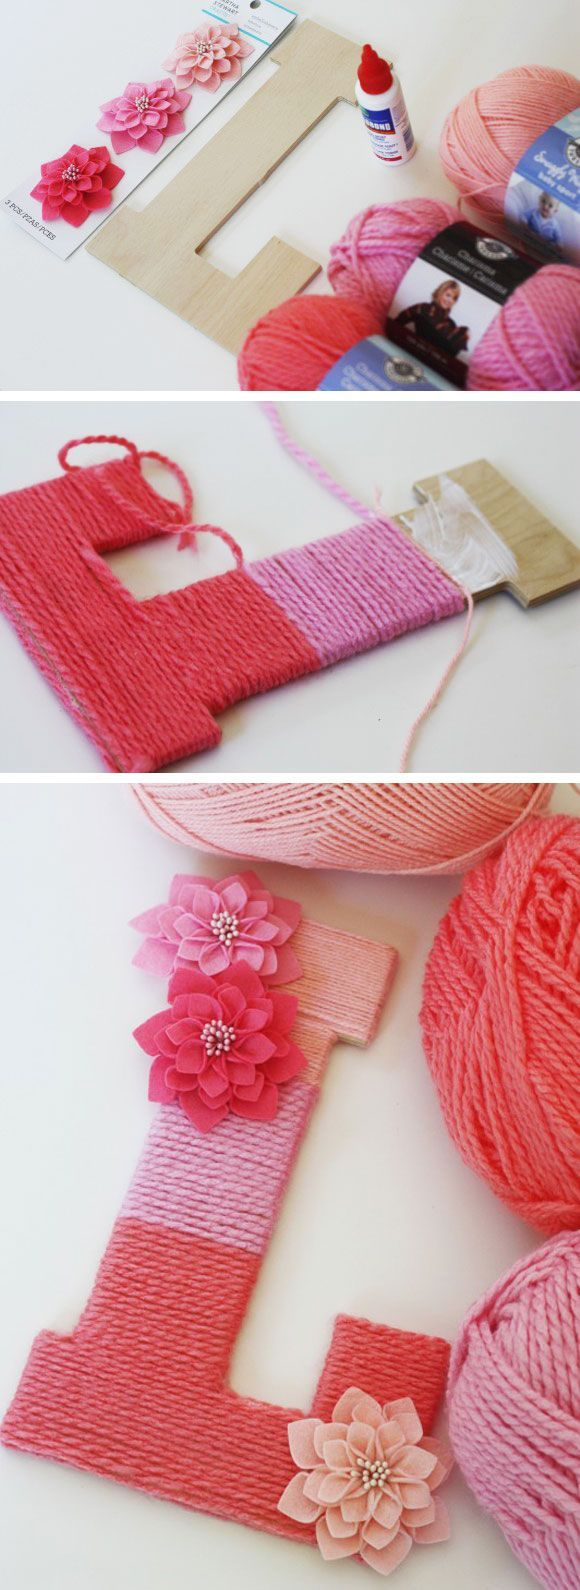 Wrap yarn around a letter made out a wood letter for a cute sign in the home! :)